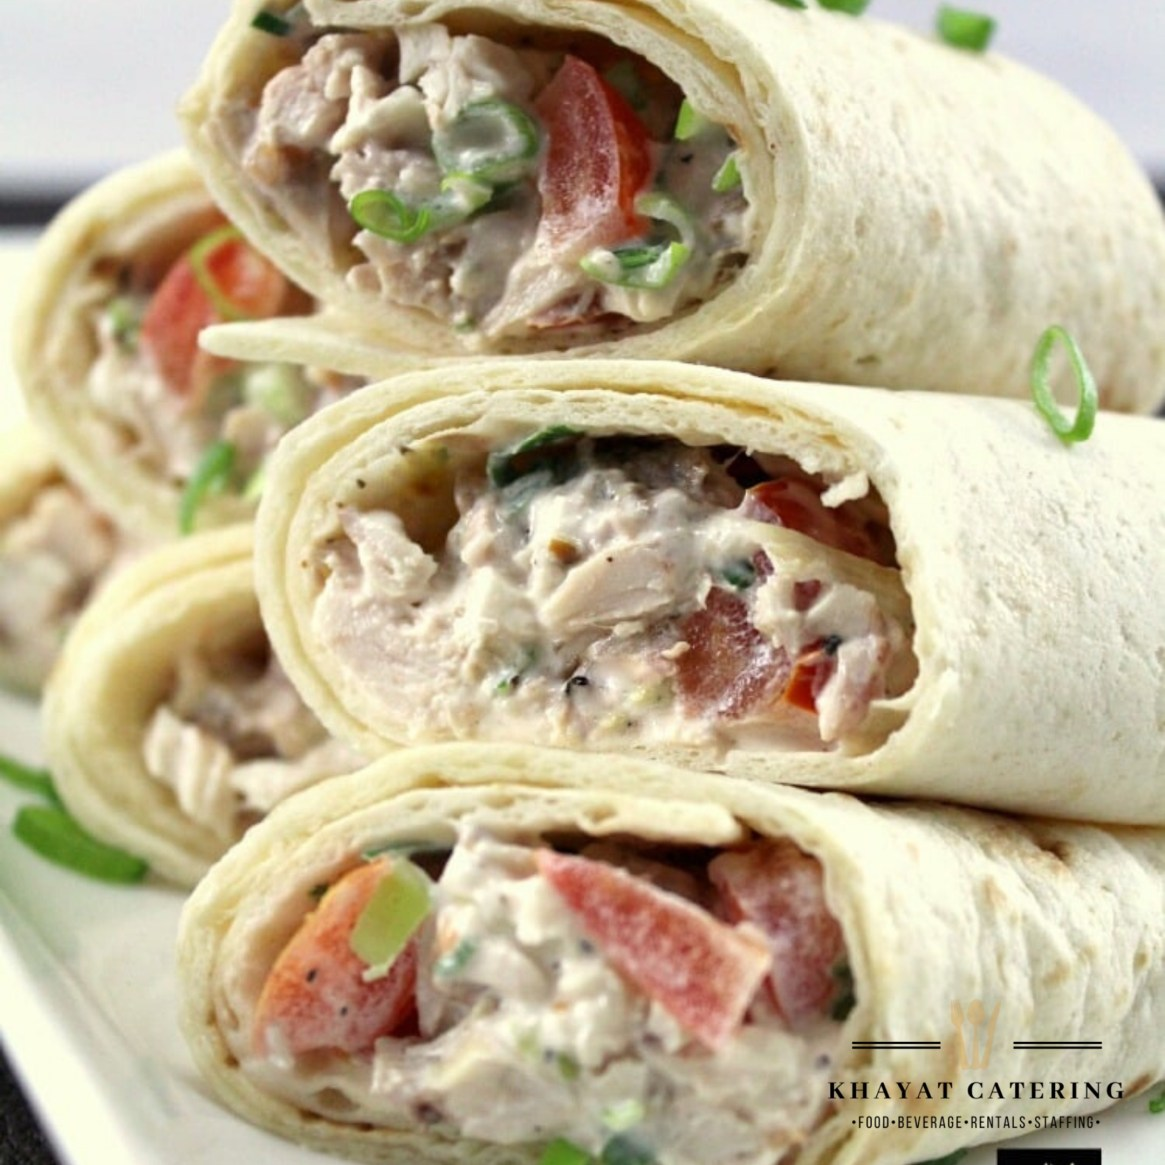 Khayat Catering chicken salad wrap